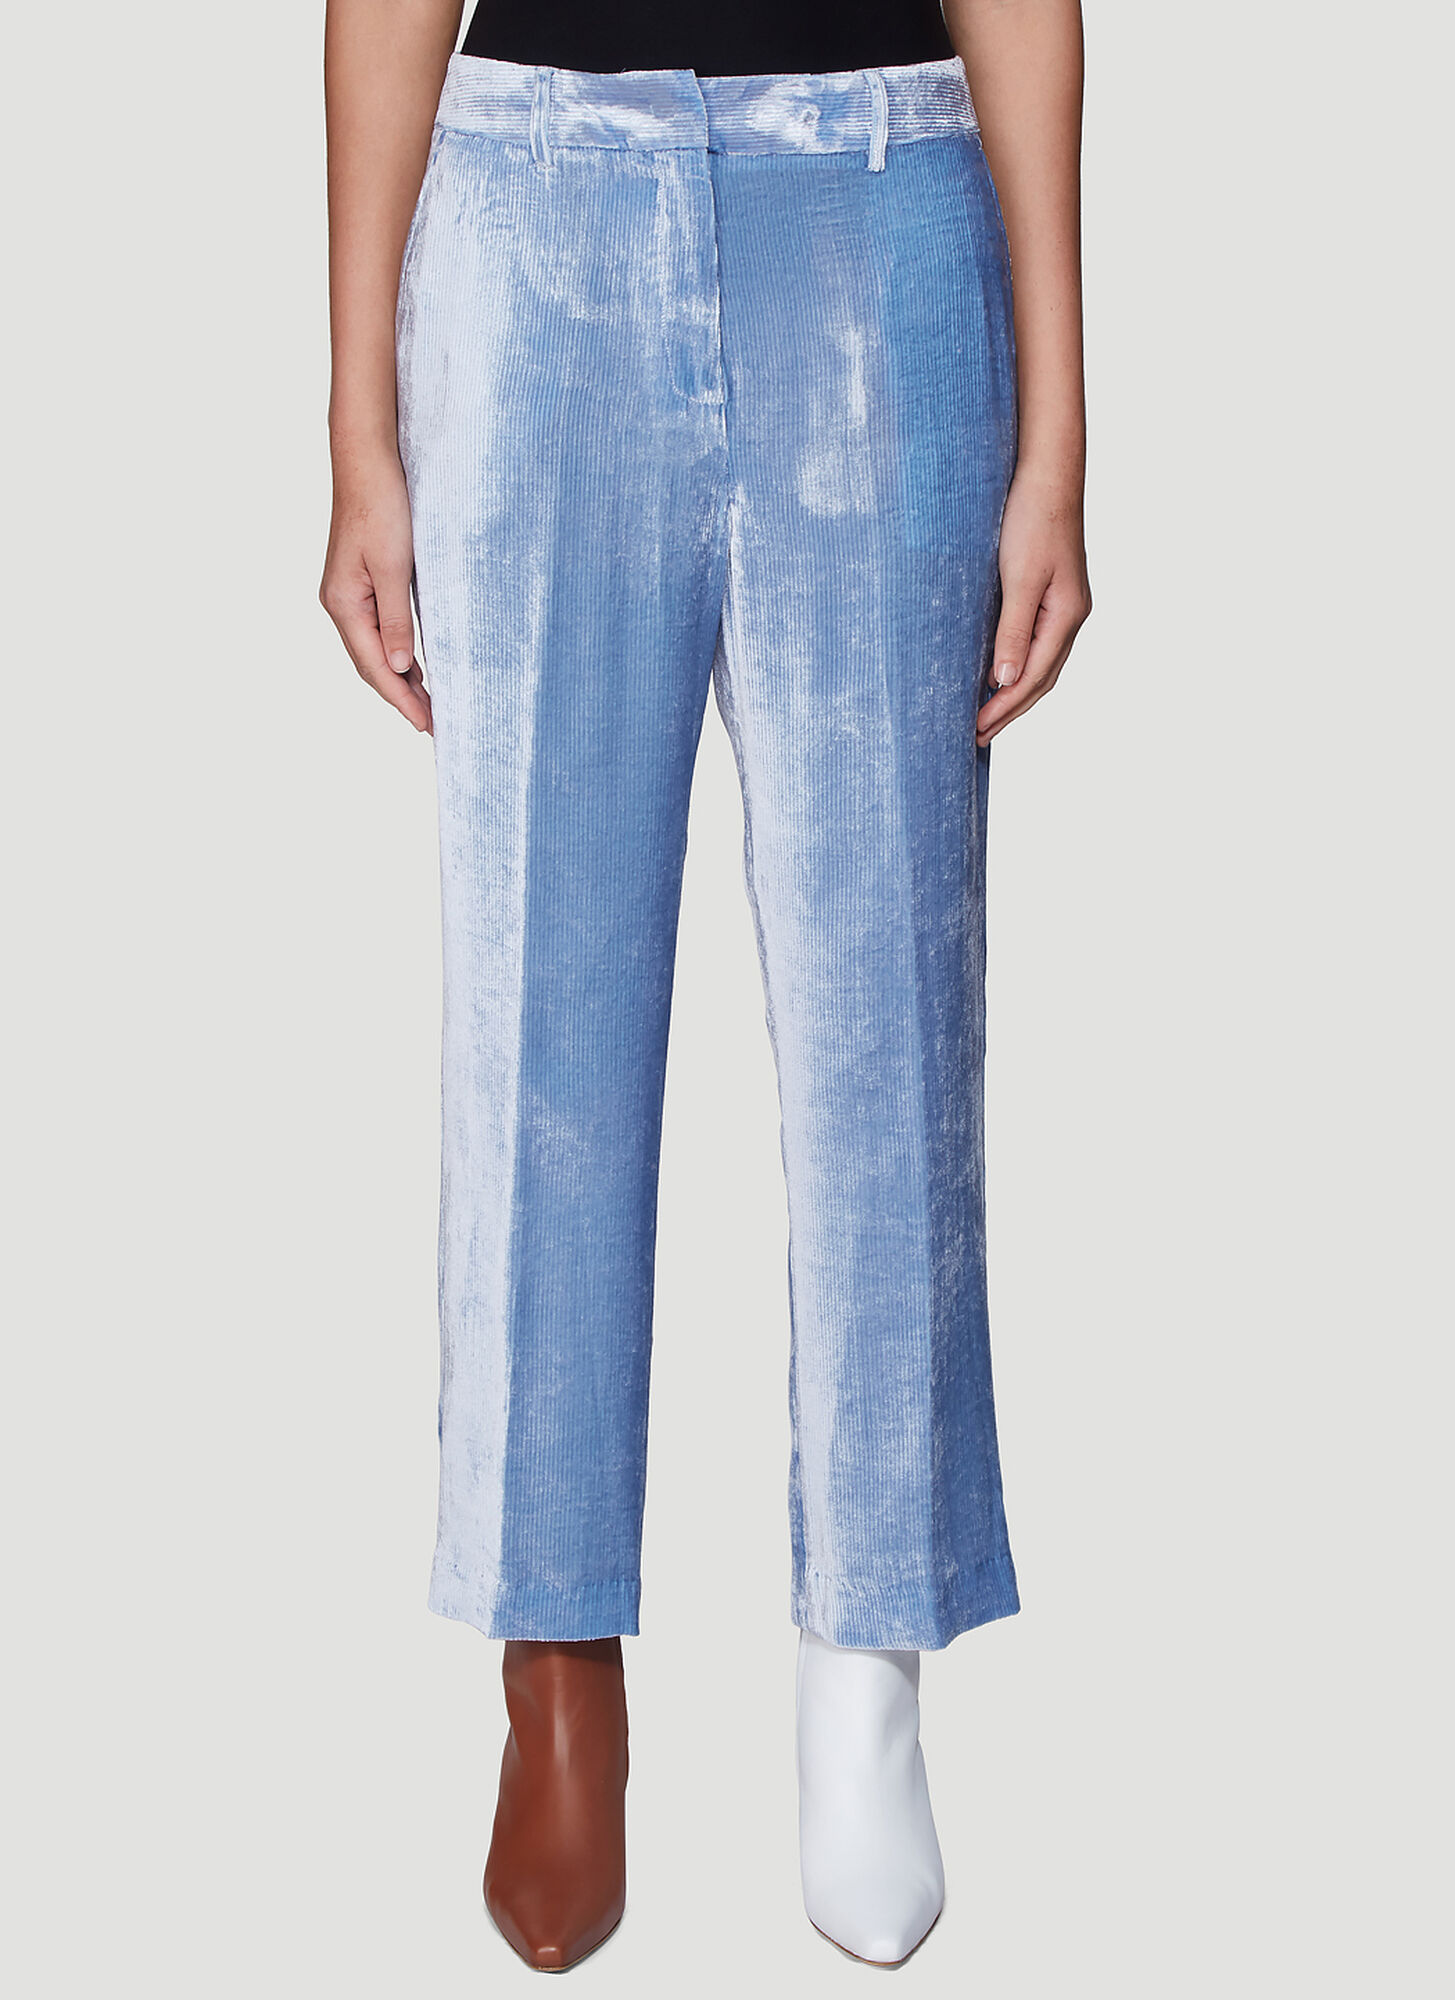 Sies Marjan Willa Fluid Corduroy Cropped Pants in Blue